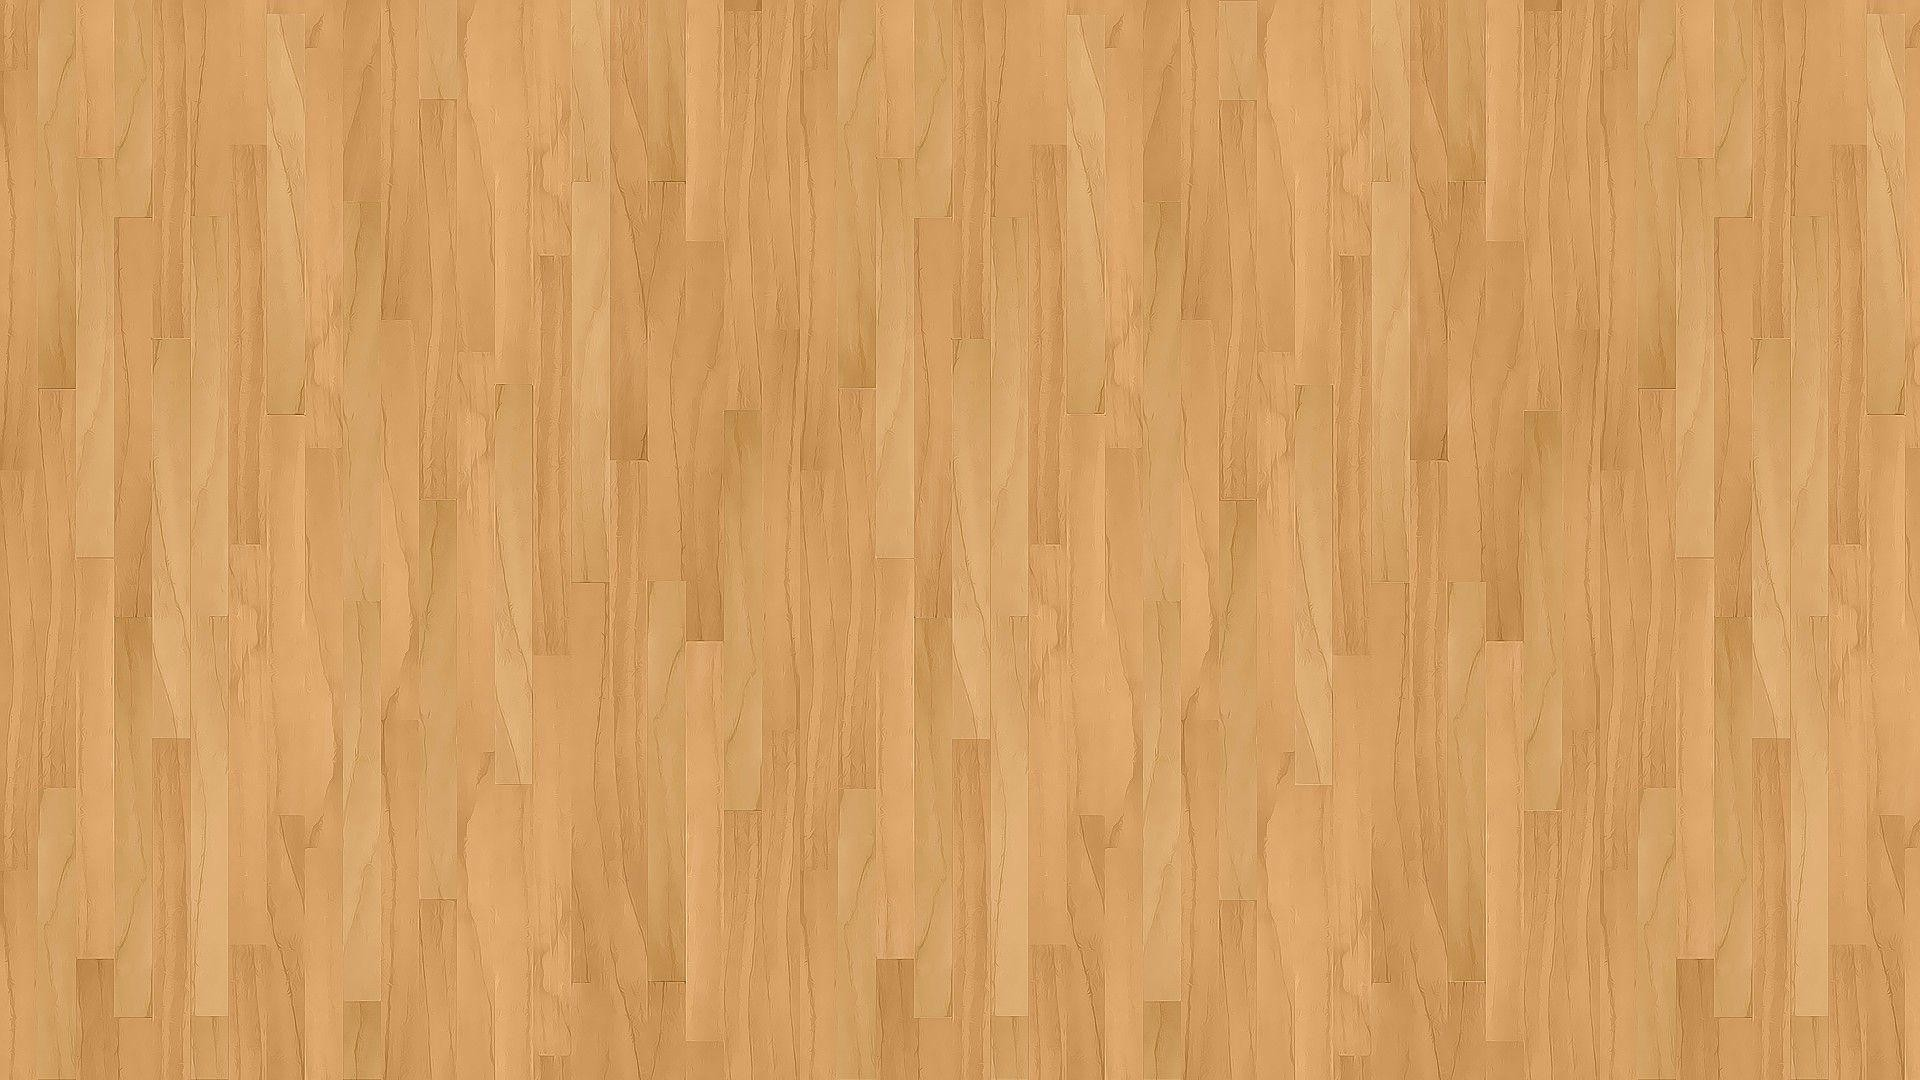 1920x1080 wood wallpaper | wood wallpaper - Part 2